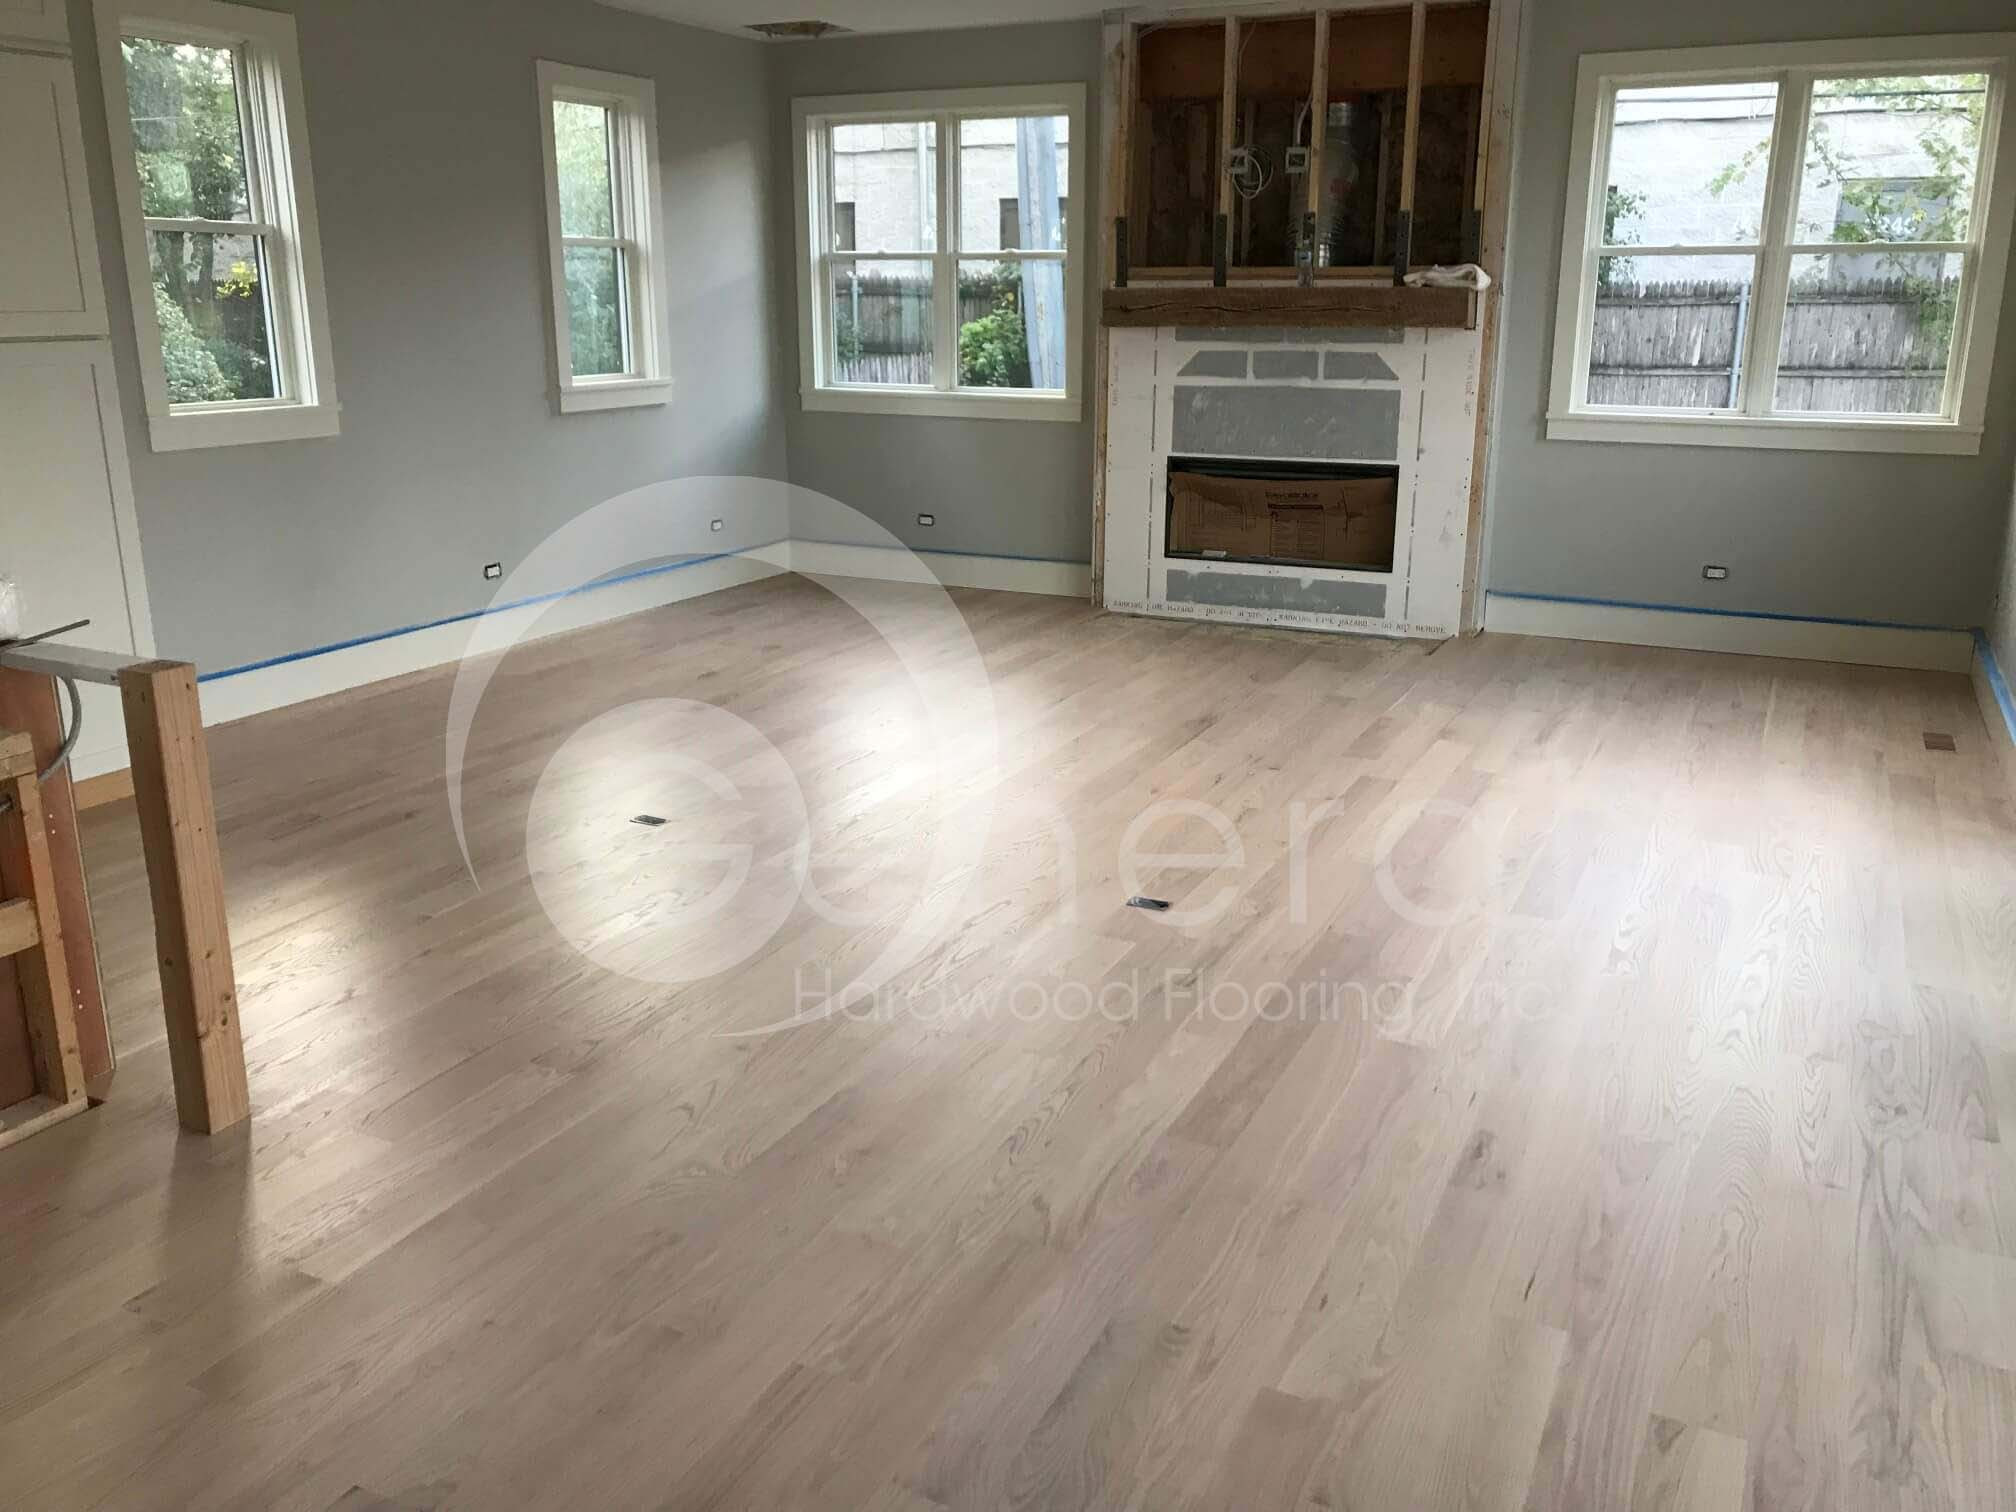 hardwood floor wax of how to apply hardwood floor finish econhomes com regarding erin new hardwood installation